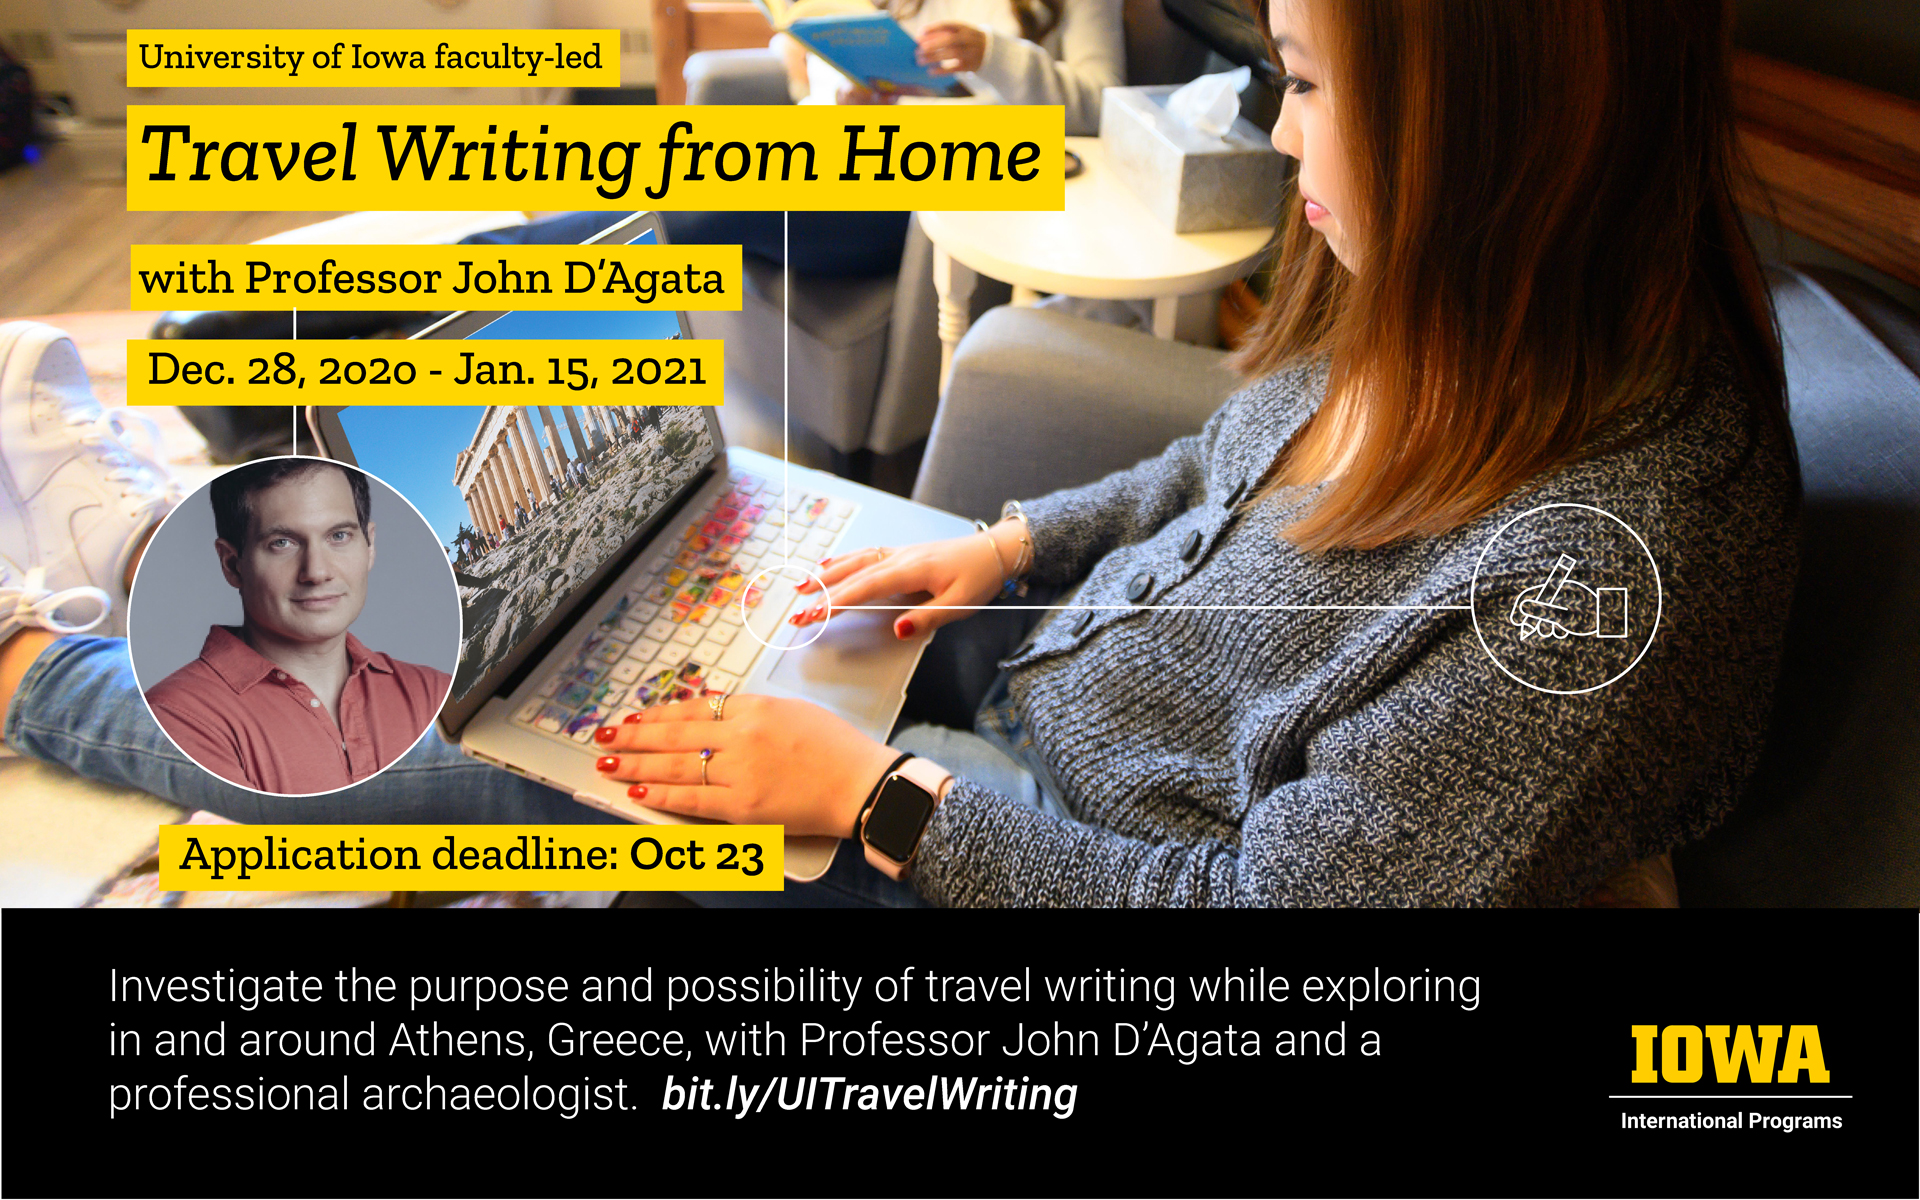 Travel Writing from Home